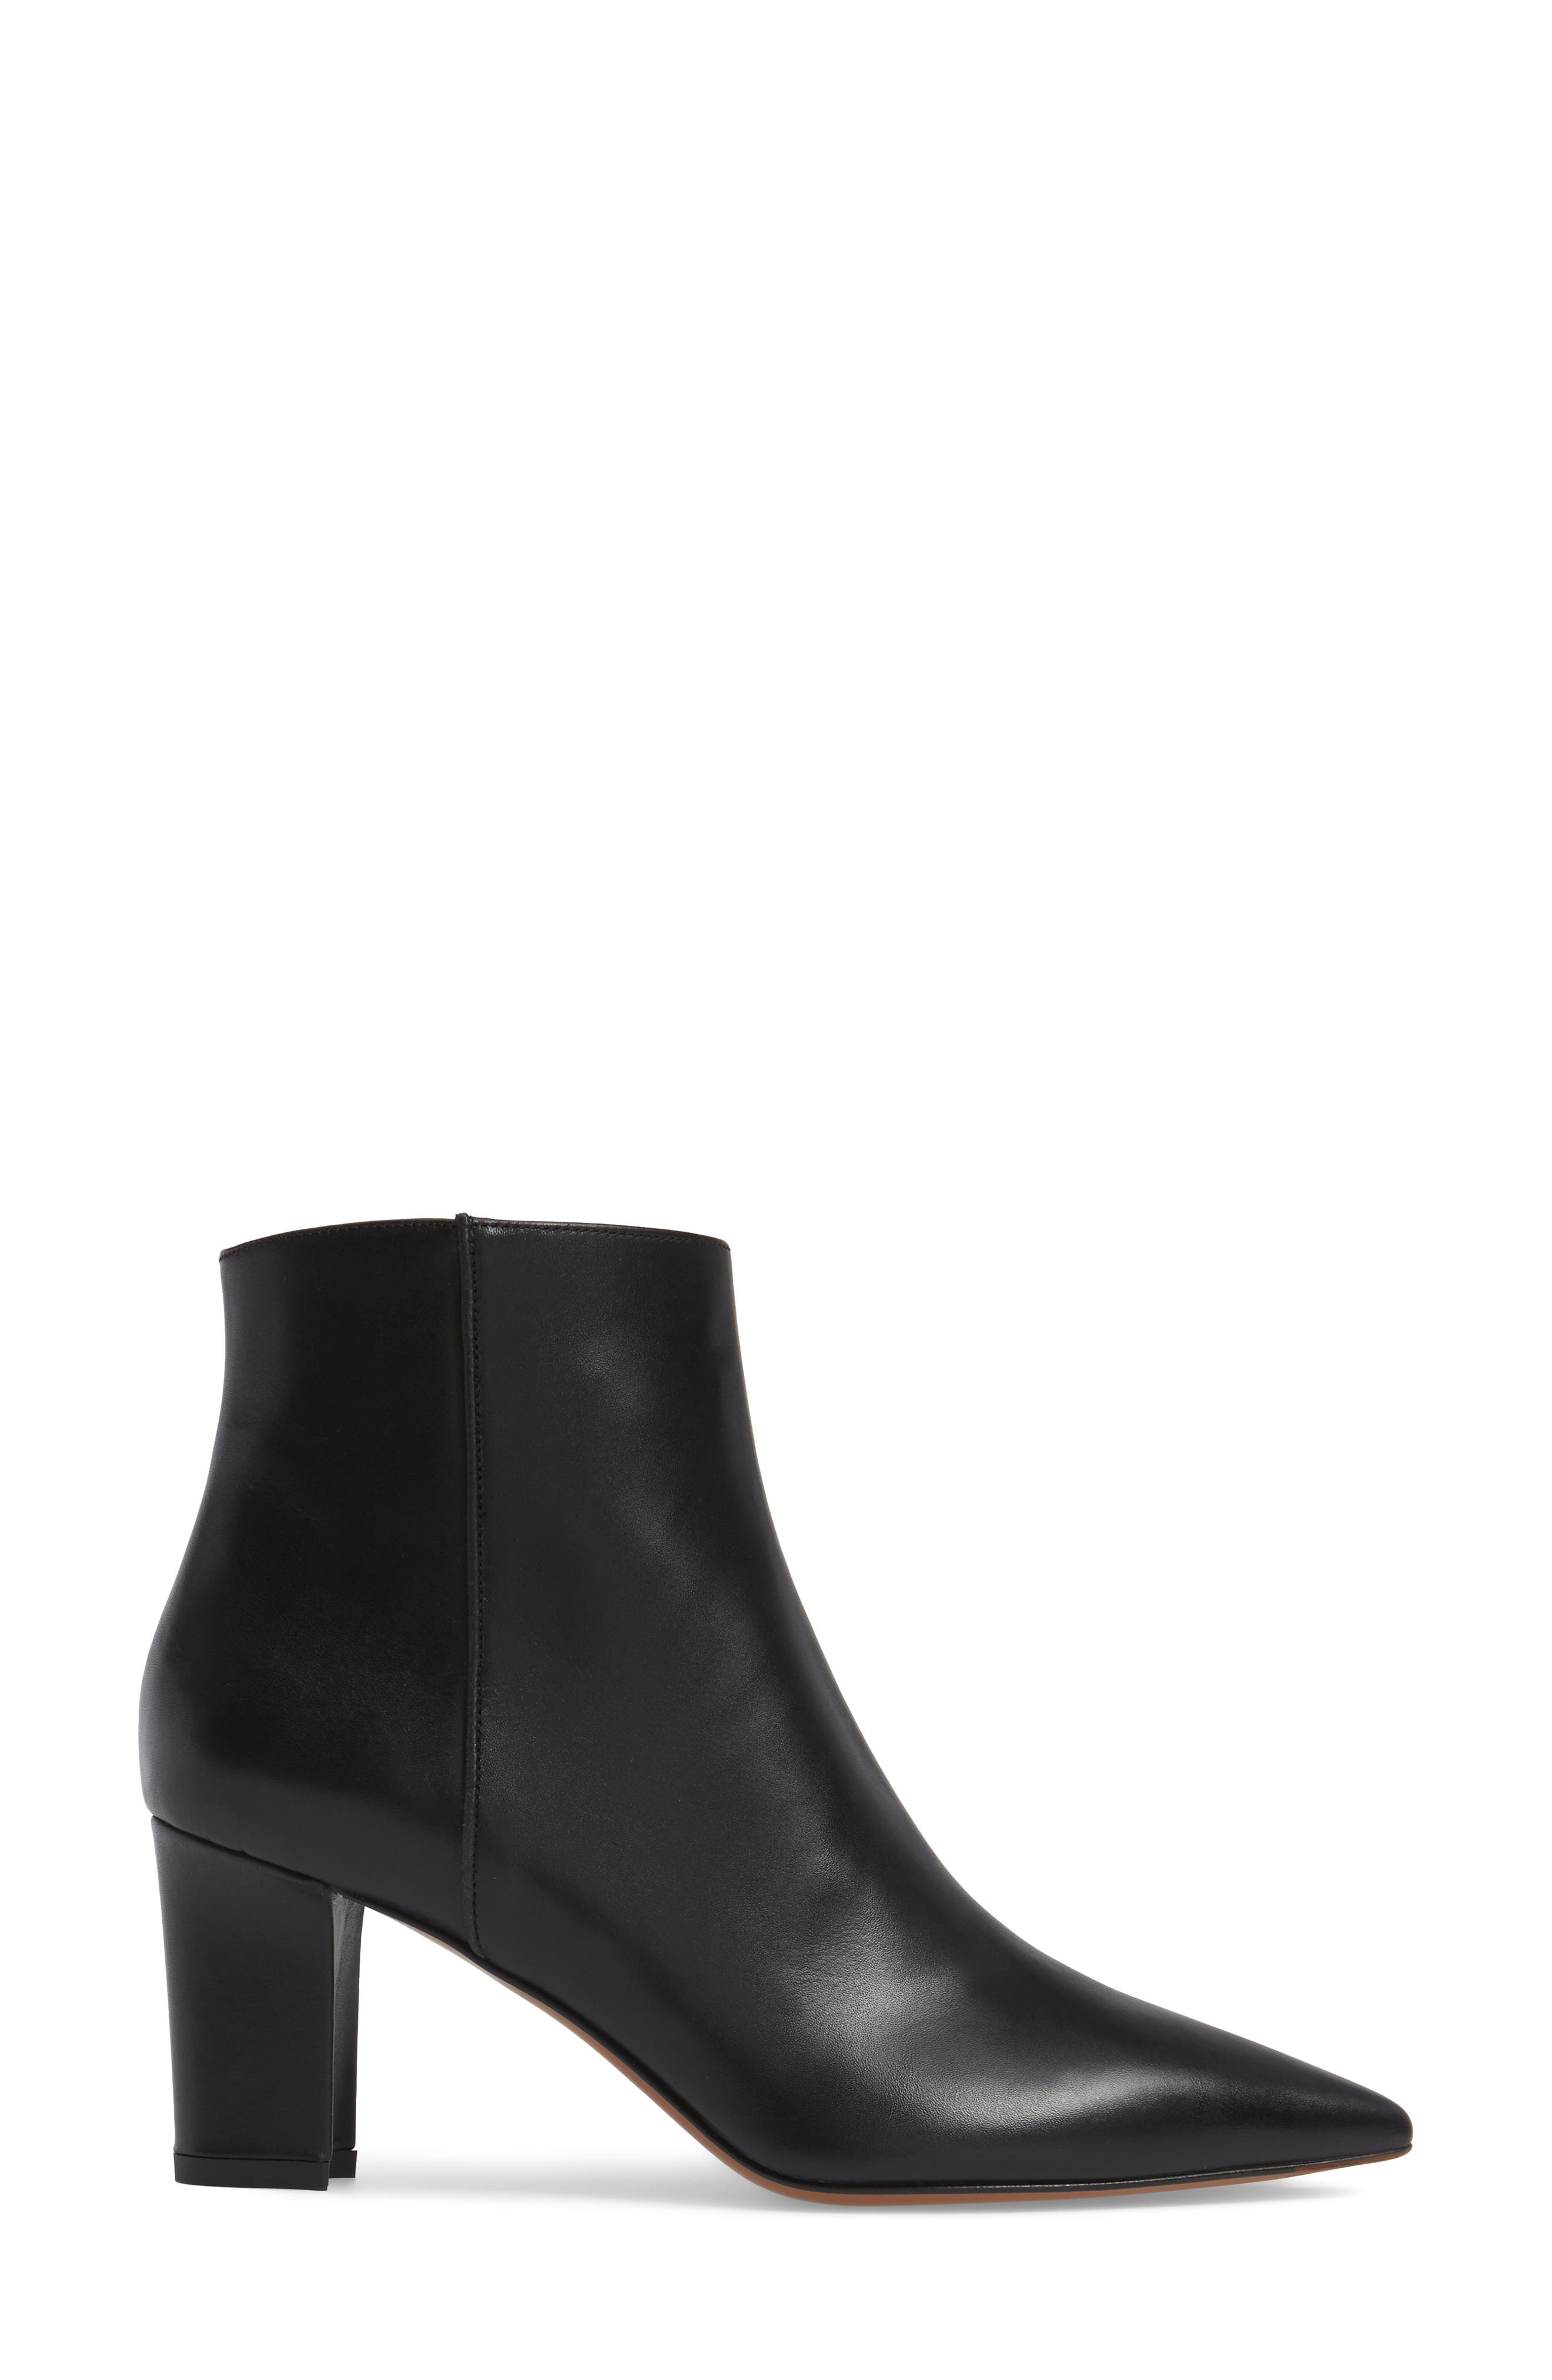 Maia Weatherproof Pointed Toe Bootie,                             Alternate thumbnail 3, color,                             002